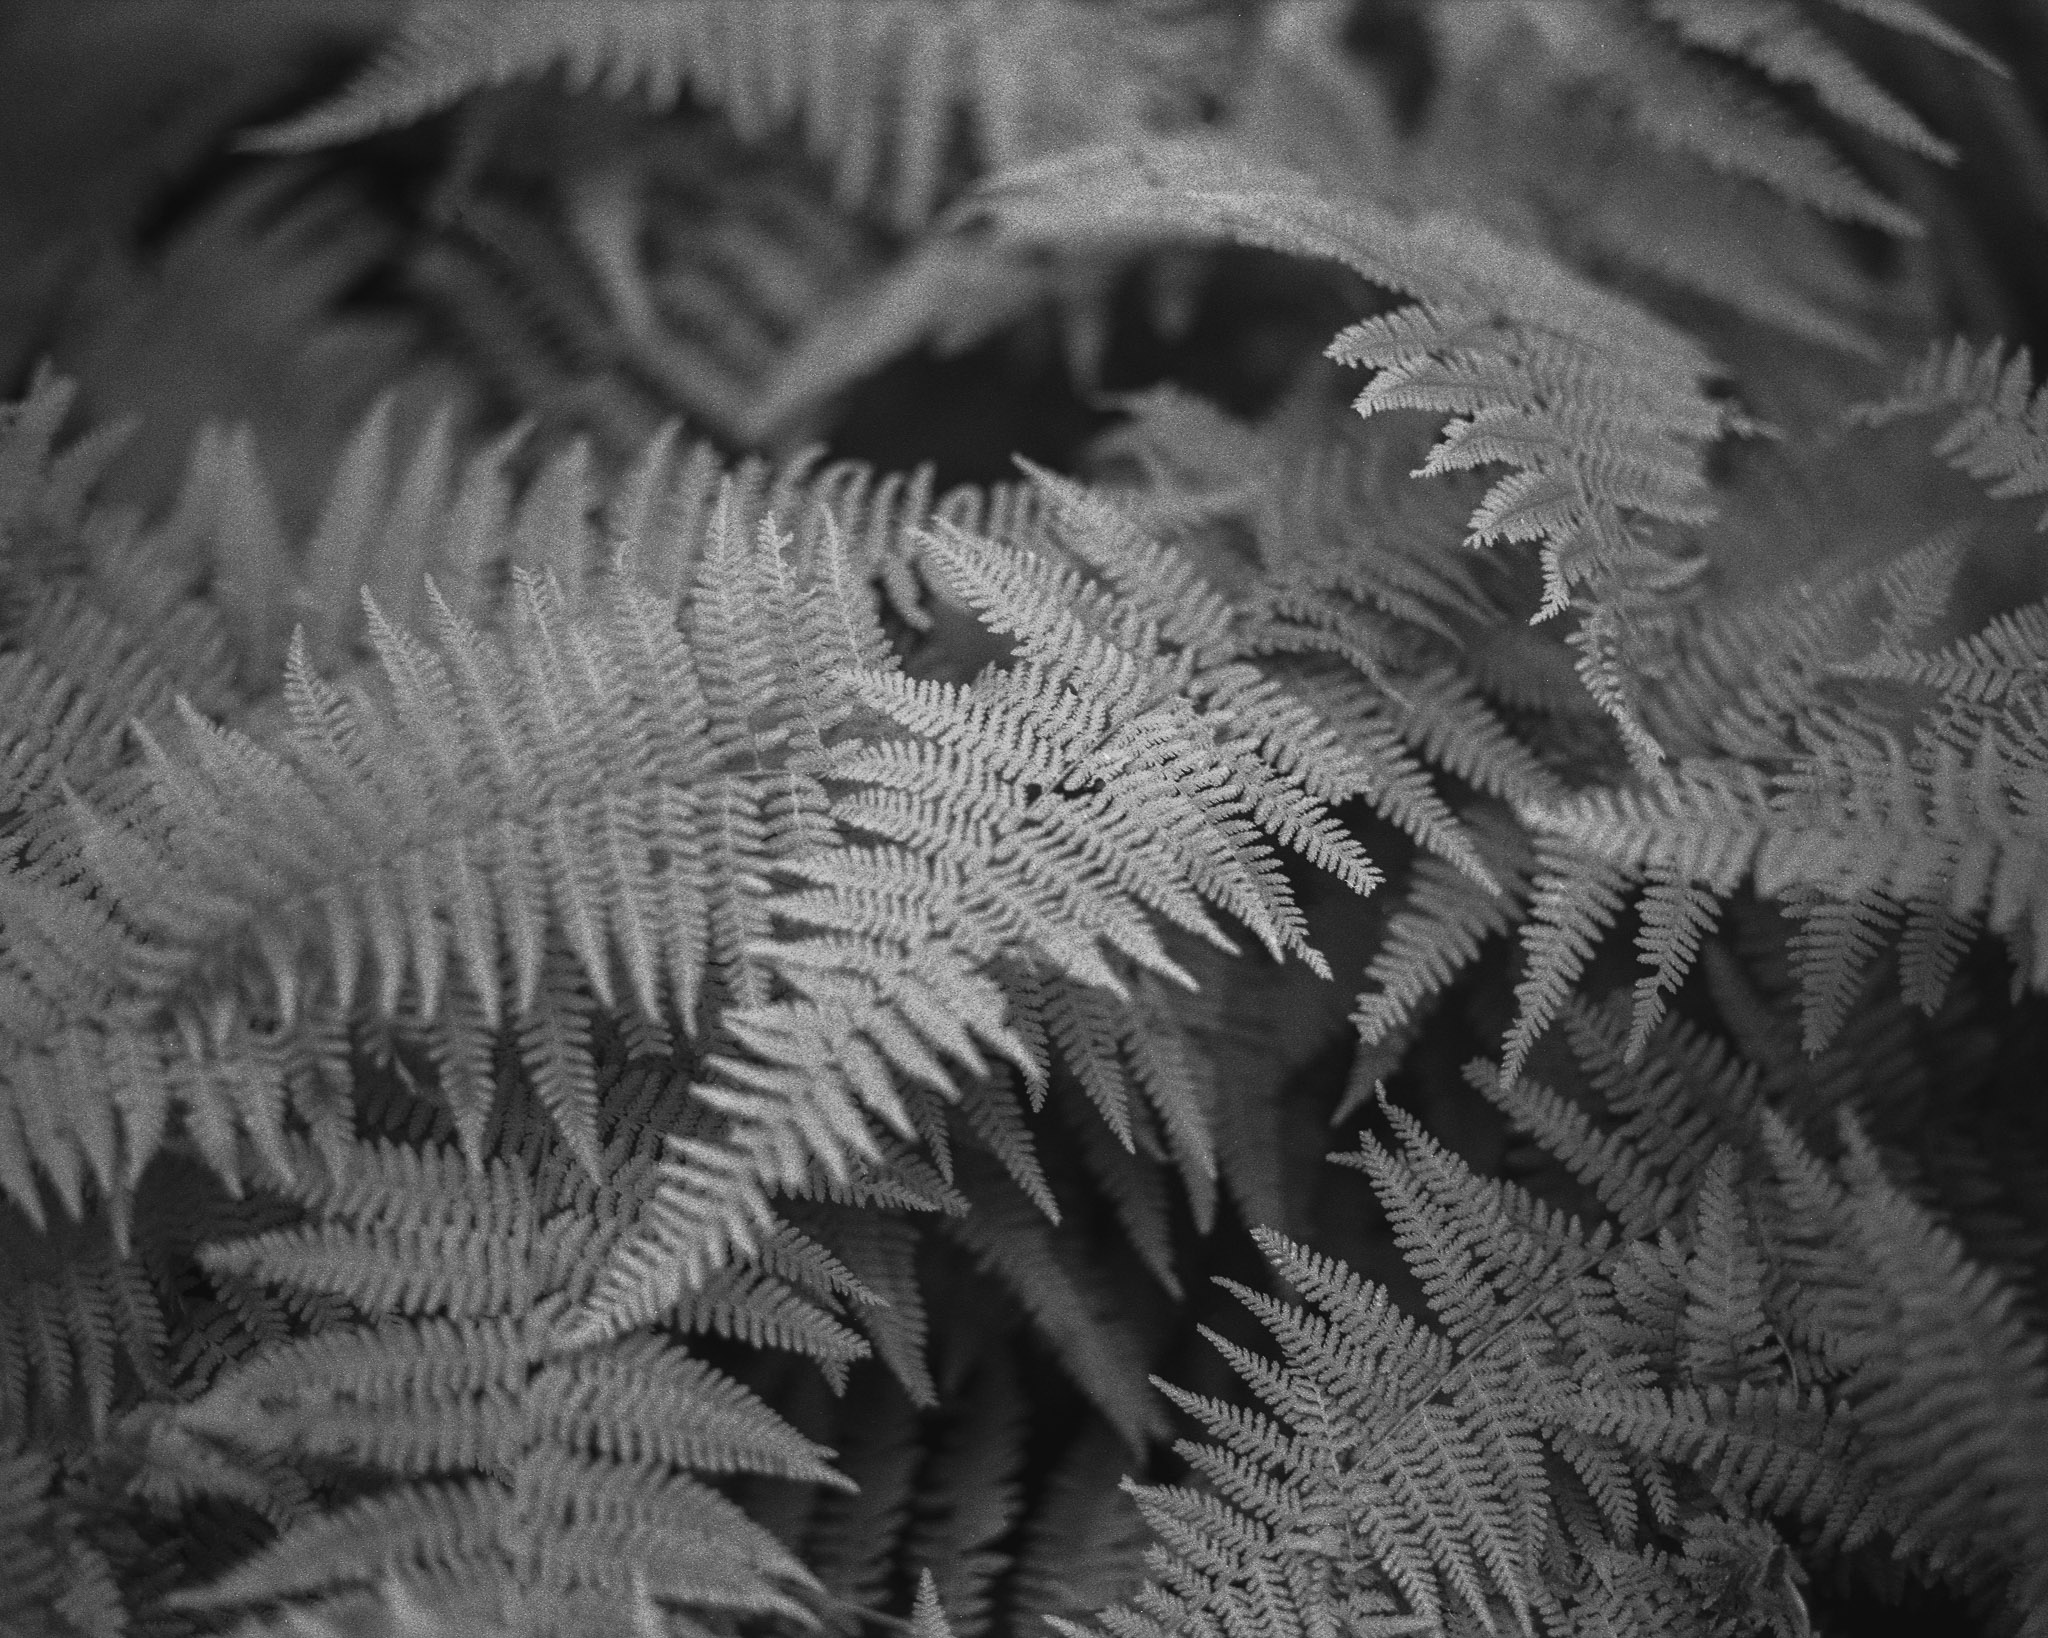 A black and white photograph created by fine artist Cody Schultz with his Pentax 67 medium format film camera using Ilford HP5+ film. This photograph is of a cluster of ferns found in northern Pennsylvania. The focus - while not pin-sharp - allows for a dreamy feeling without it being overdone.